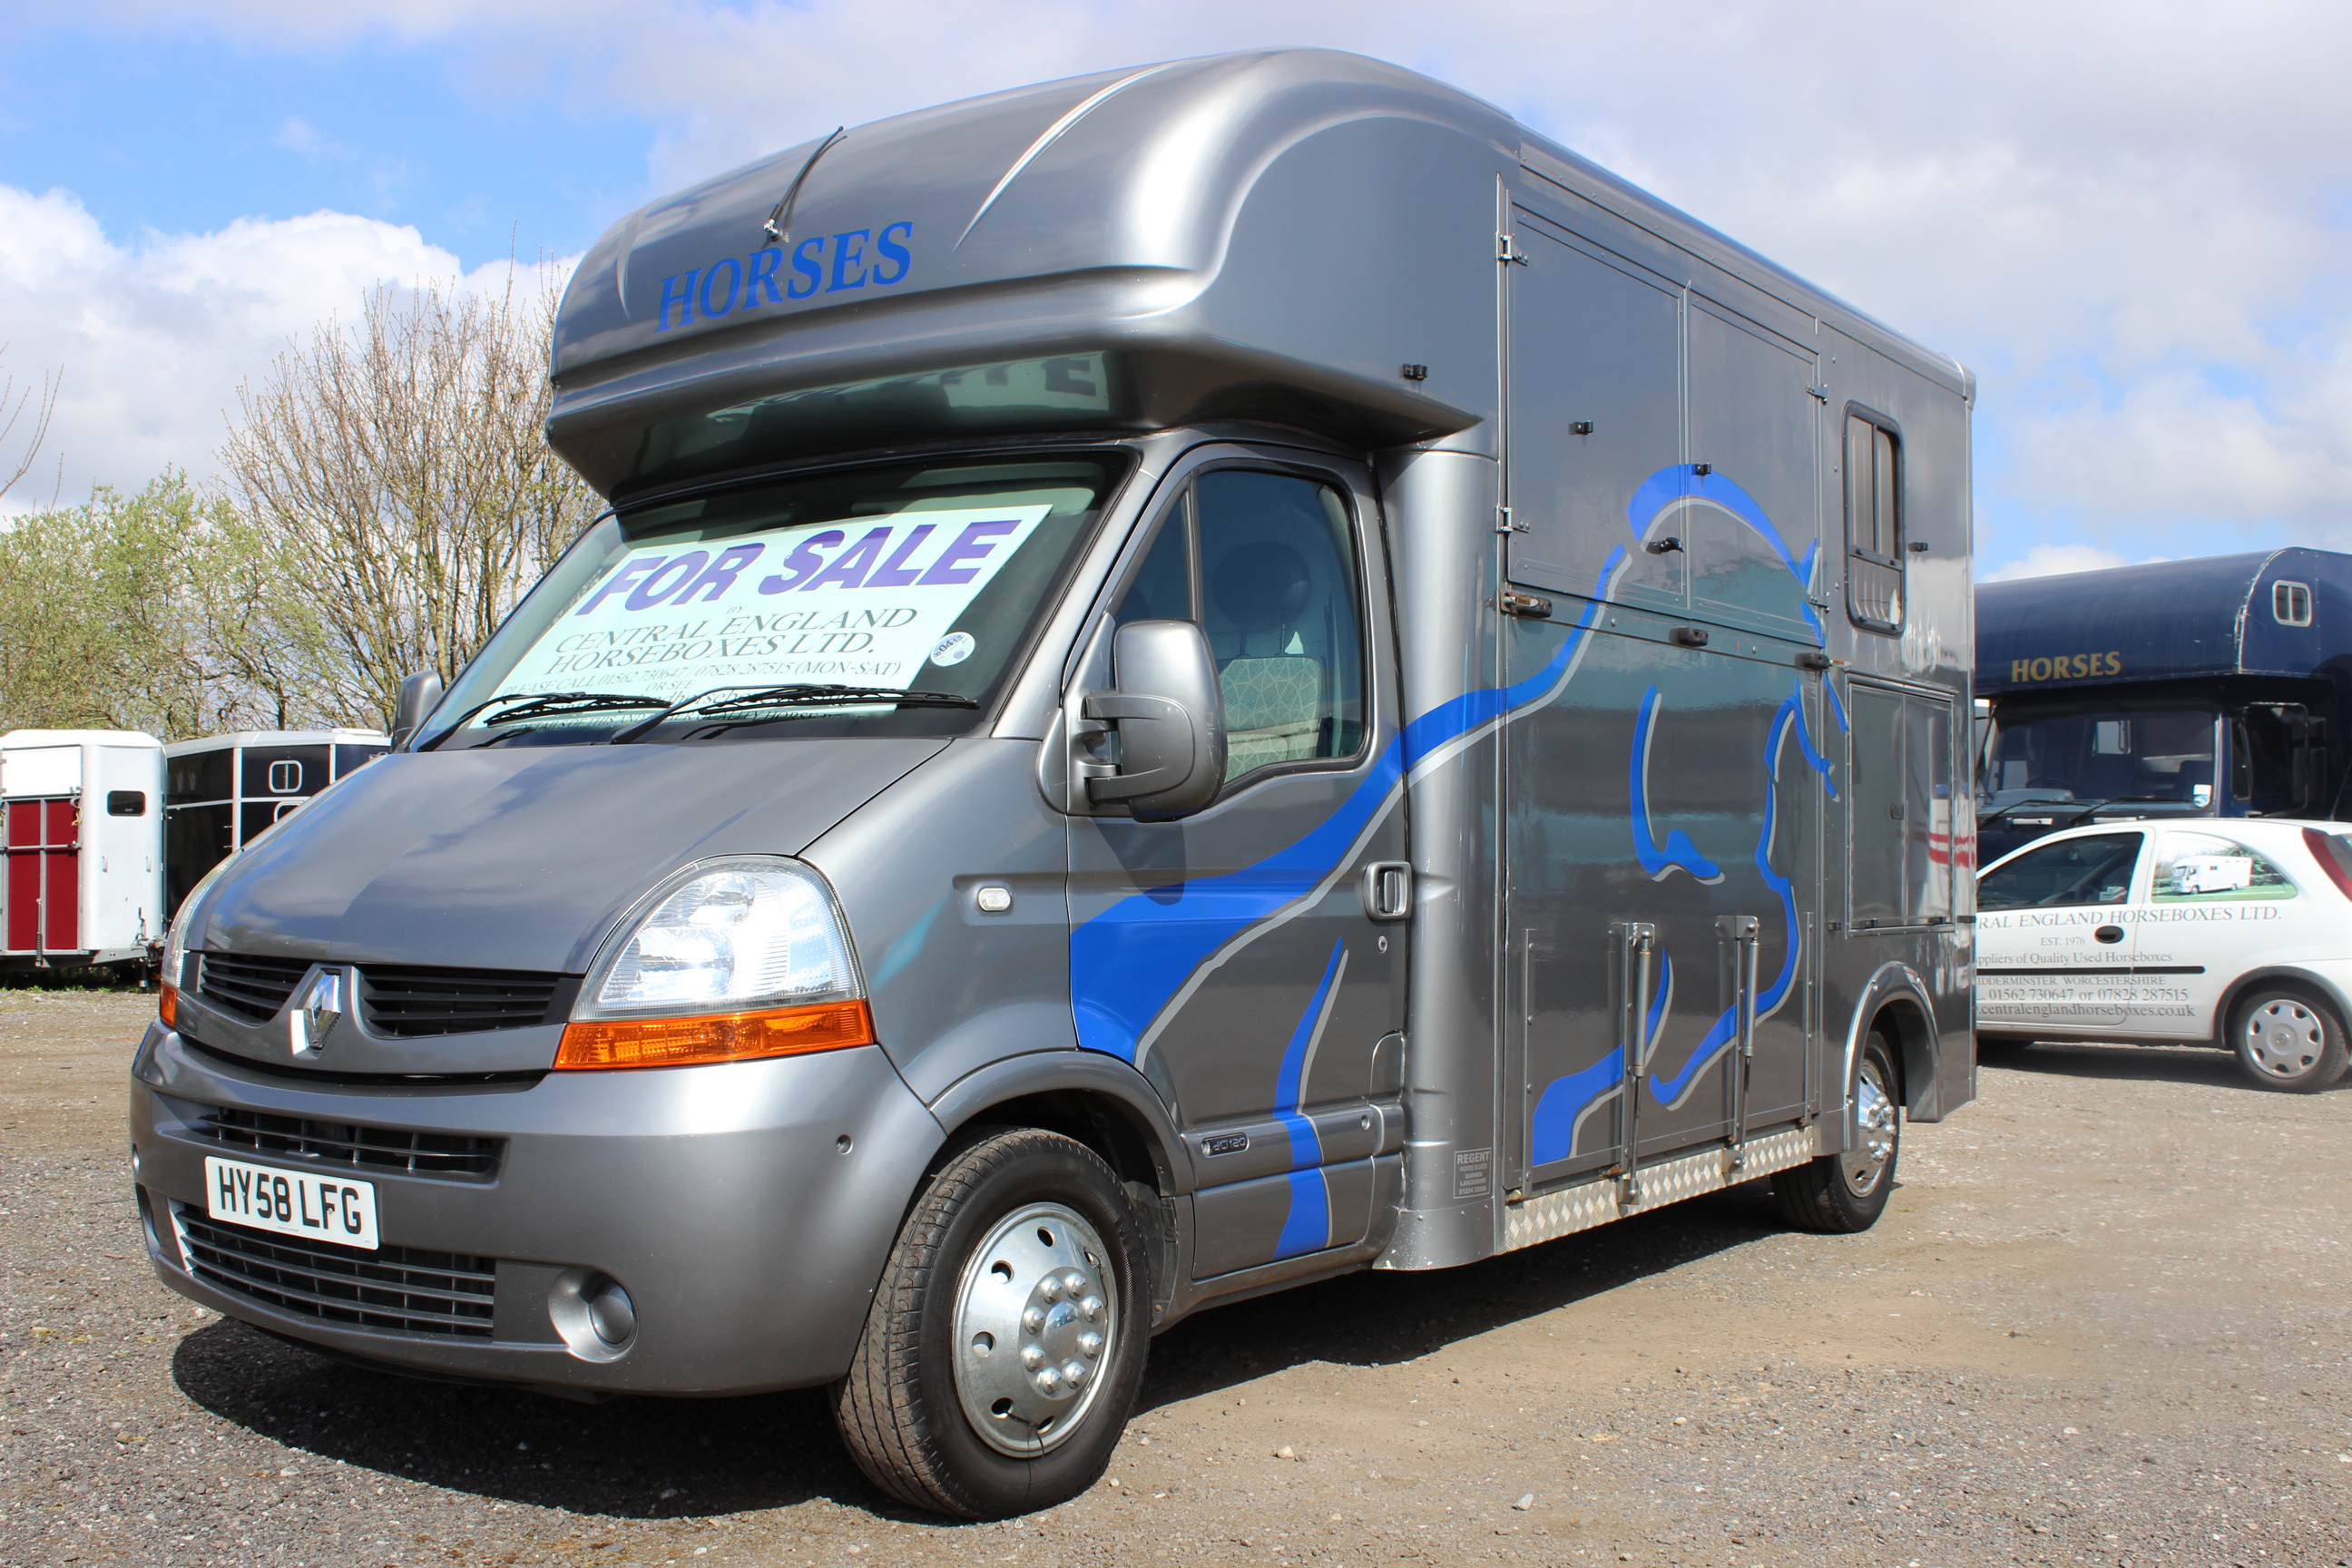 3 5 ton renault master horsebox for sale central england horseboxes. Black Bedroom Furniture Sets. Home Design Ideas